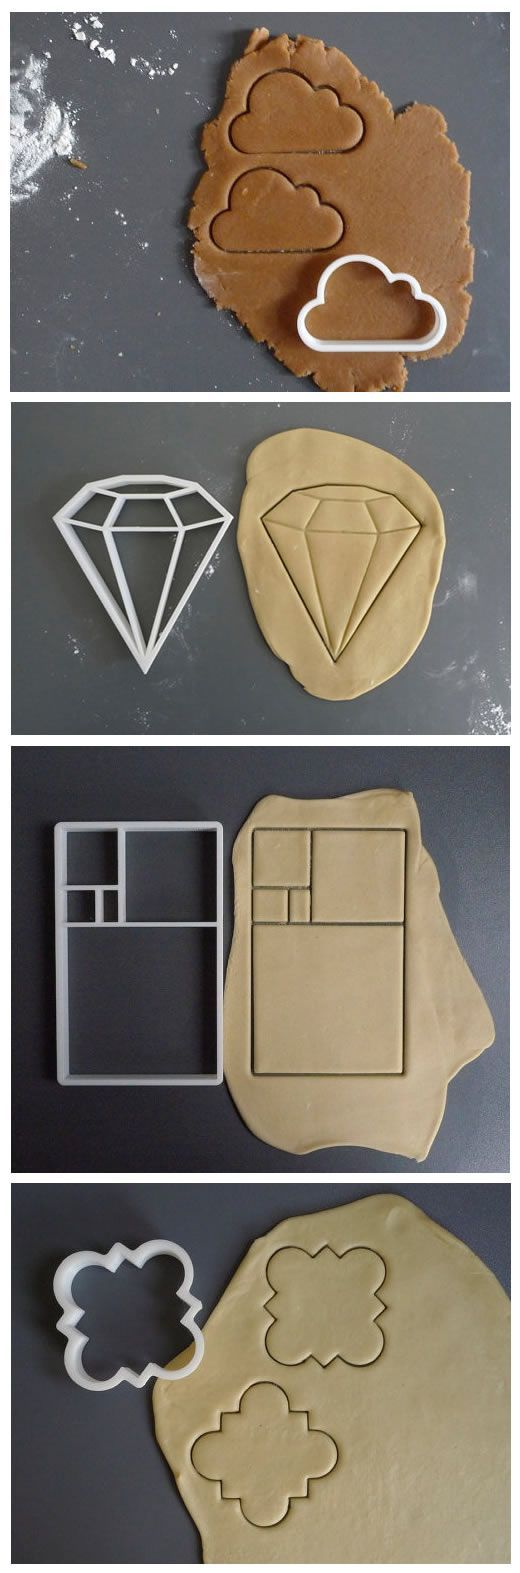 Geek cookie cutters 3d printed. Something fun to make with the kids on rainy summer days.                                                                                                                                                                                 More